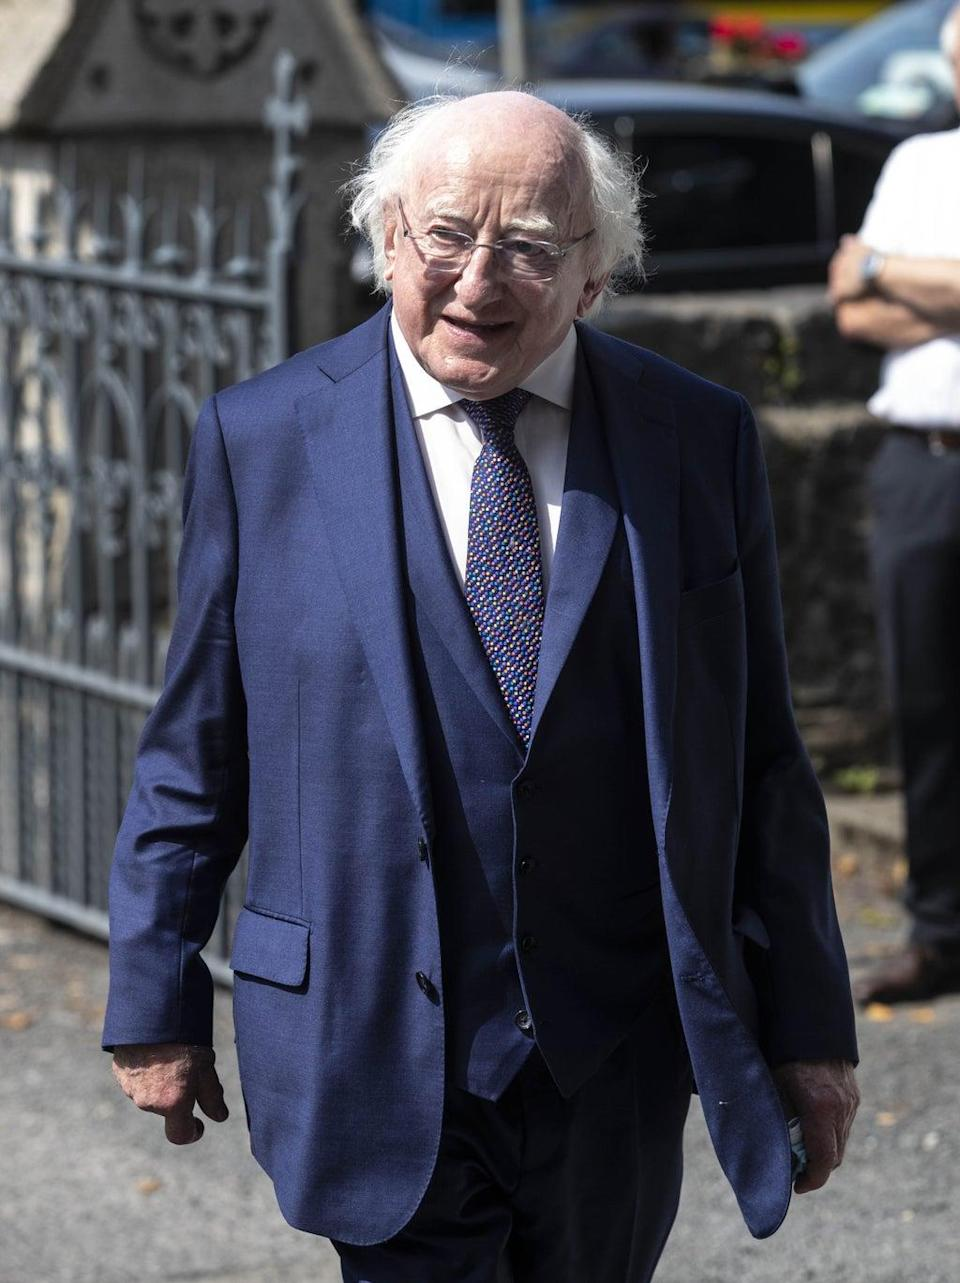 Irish President Michael D Higgins said it would be inappropriate for him to attend the event (Damien Eagers/PA) (PA Wire)